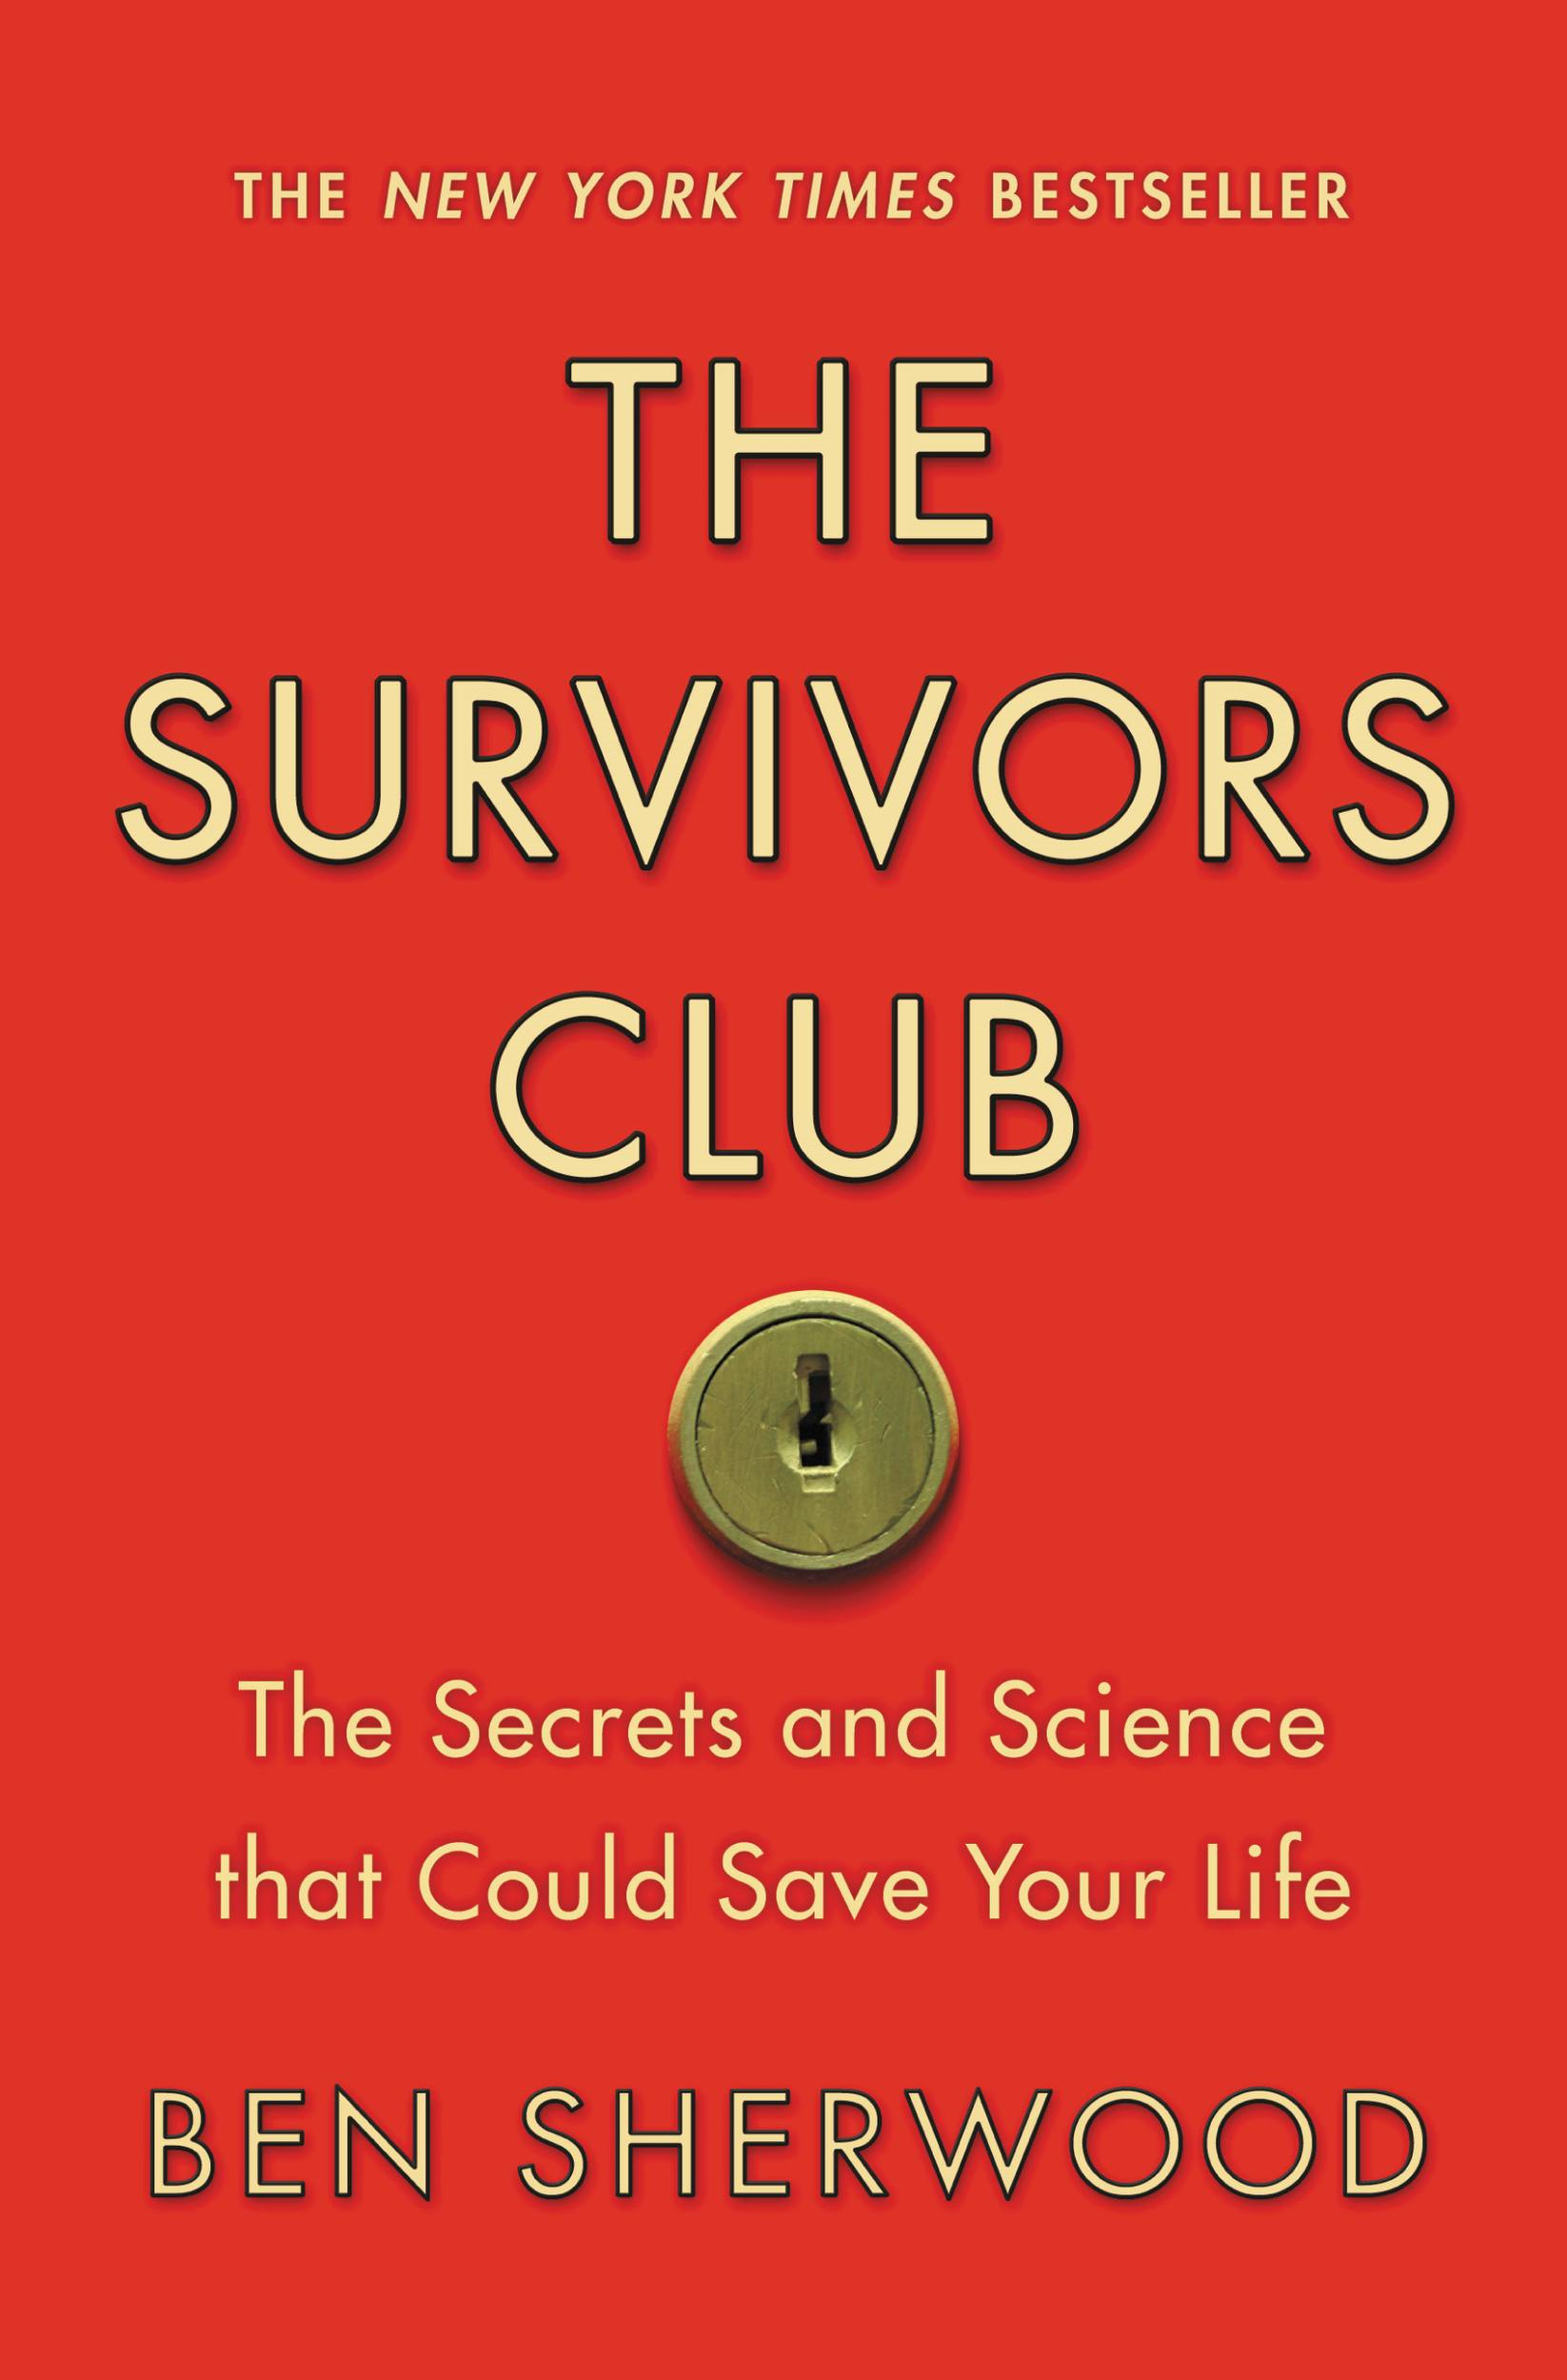 The Survivors Club By: Ben Sherwood